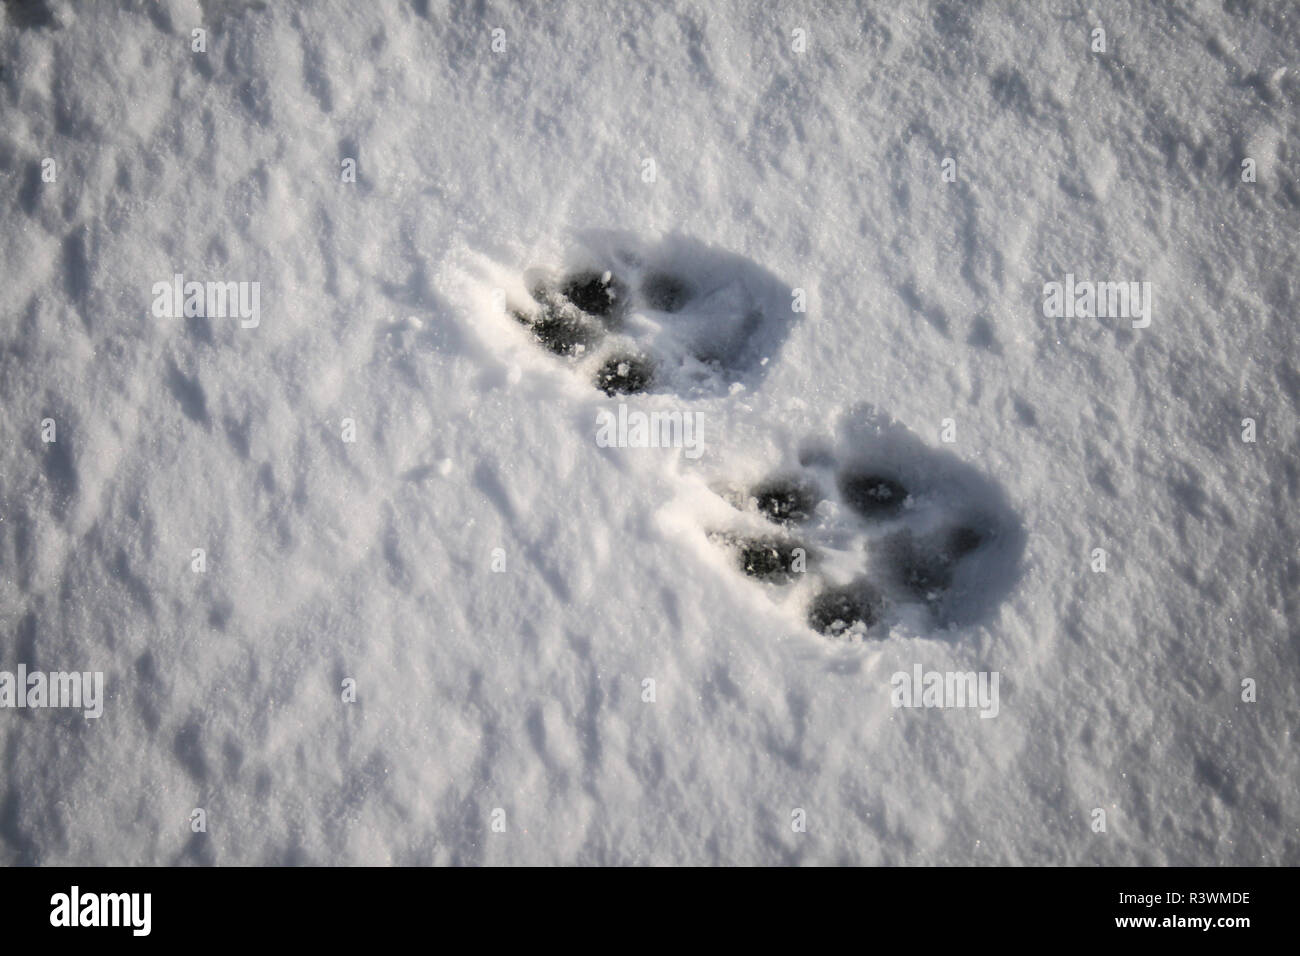 Paw prints of a dog in the snow - Stock Image